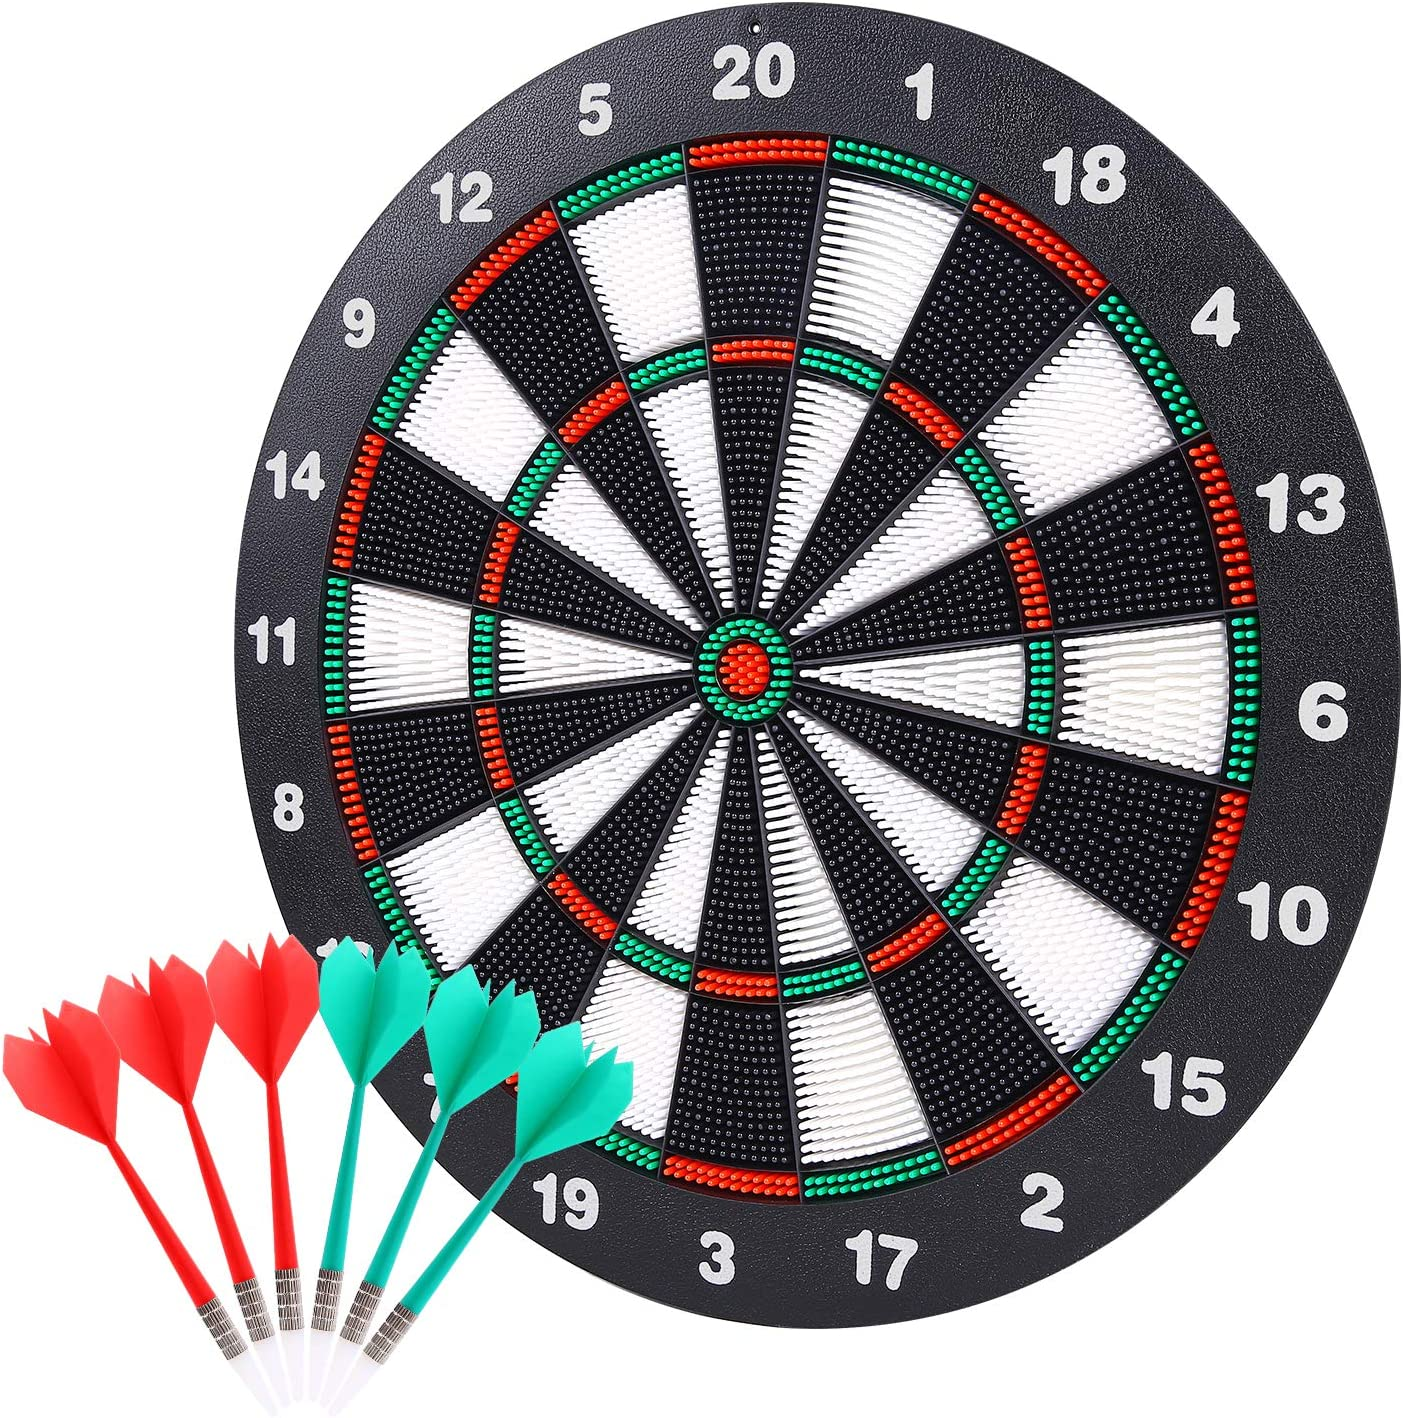 Theefun Safety Dart Board Set -16 Inch Rubber Dartboard Game with 6 Soft Tip Darts for Kids and Adults, Party, Office and Family Leisure Sport